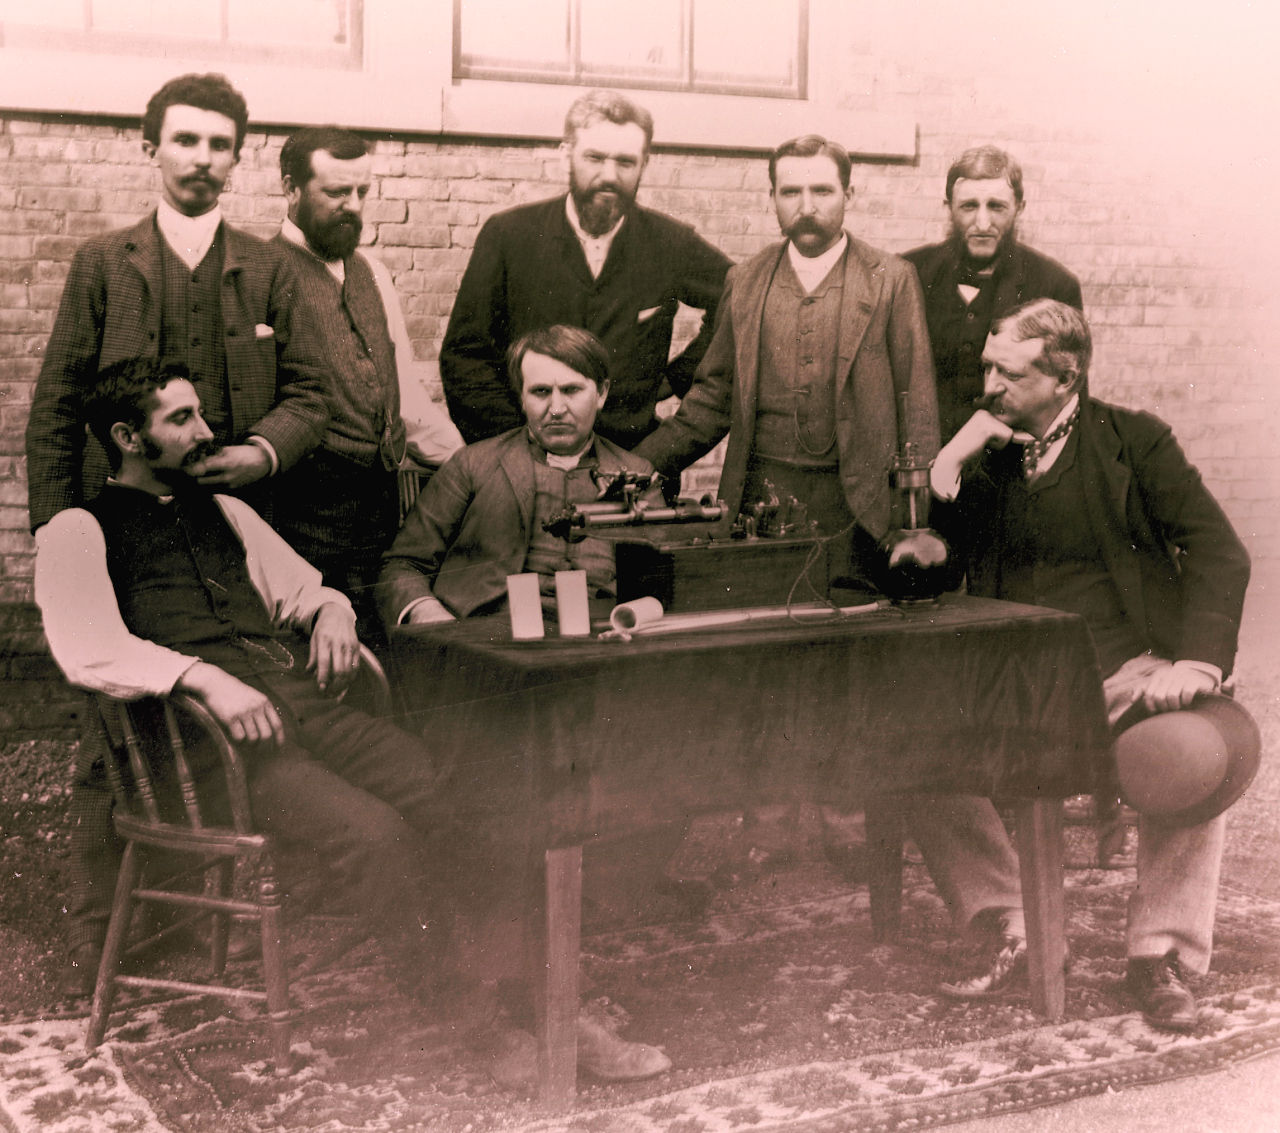 Thomas Edison with his group. The phonograph on the table. Edison is seated in the center, Theo Wangemann is standing behind him.